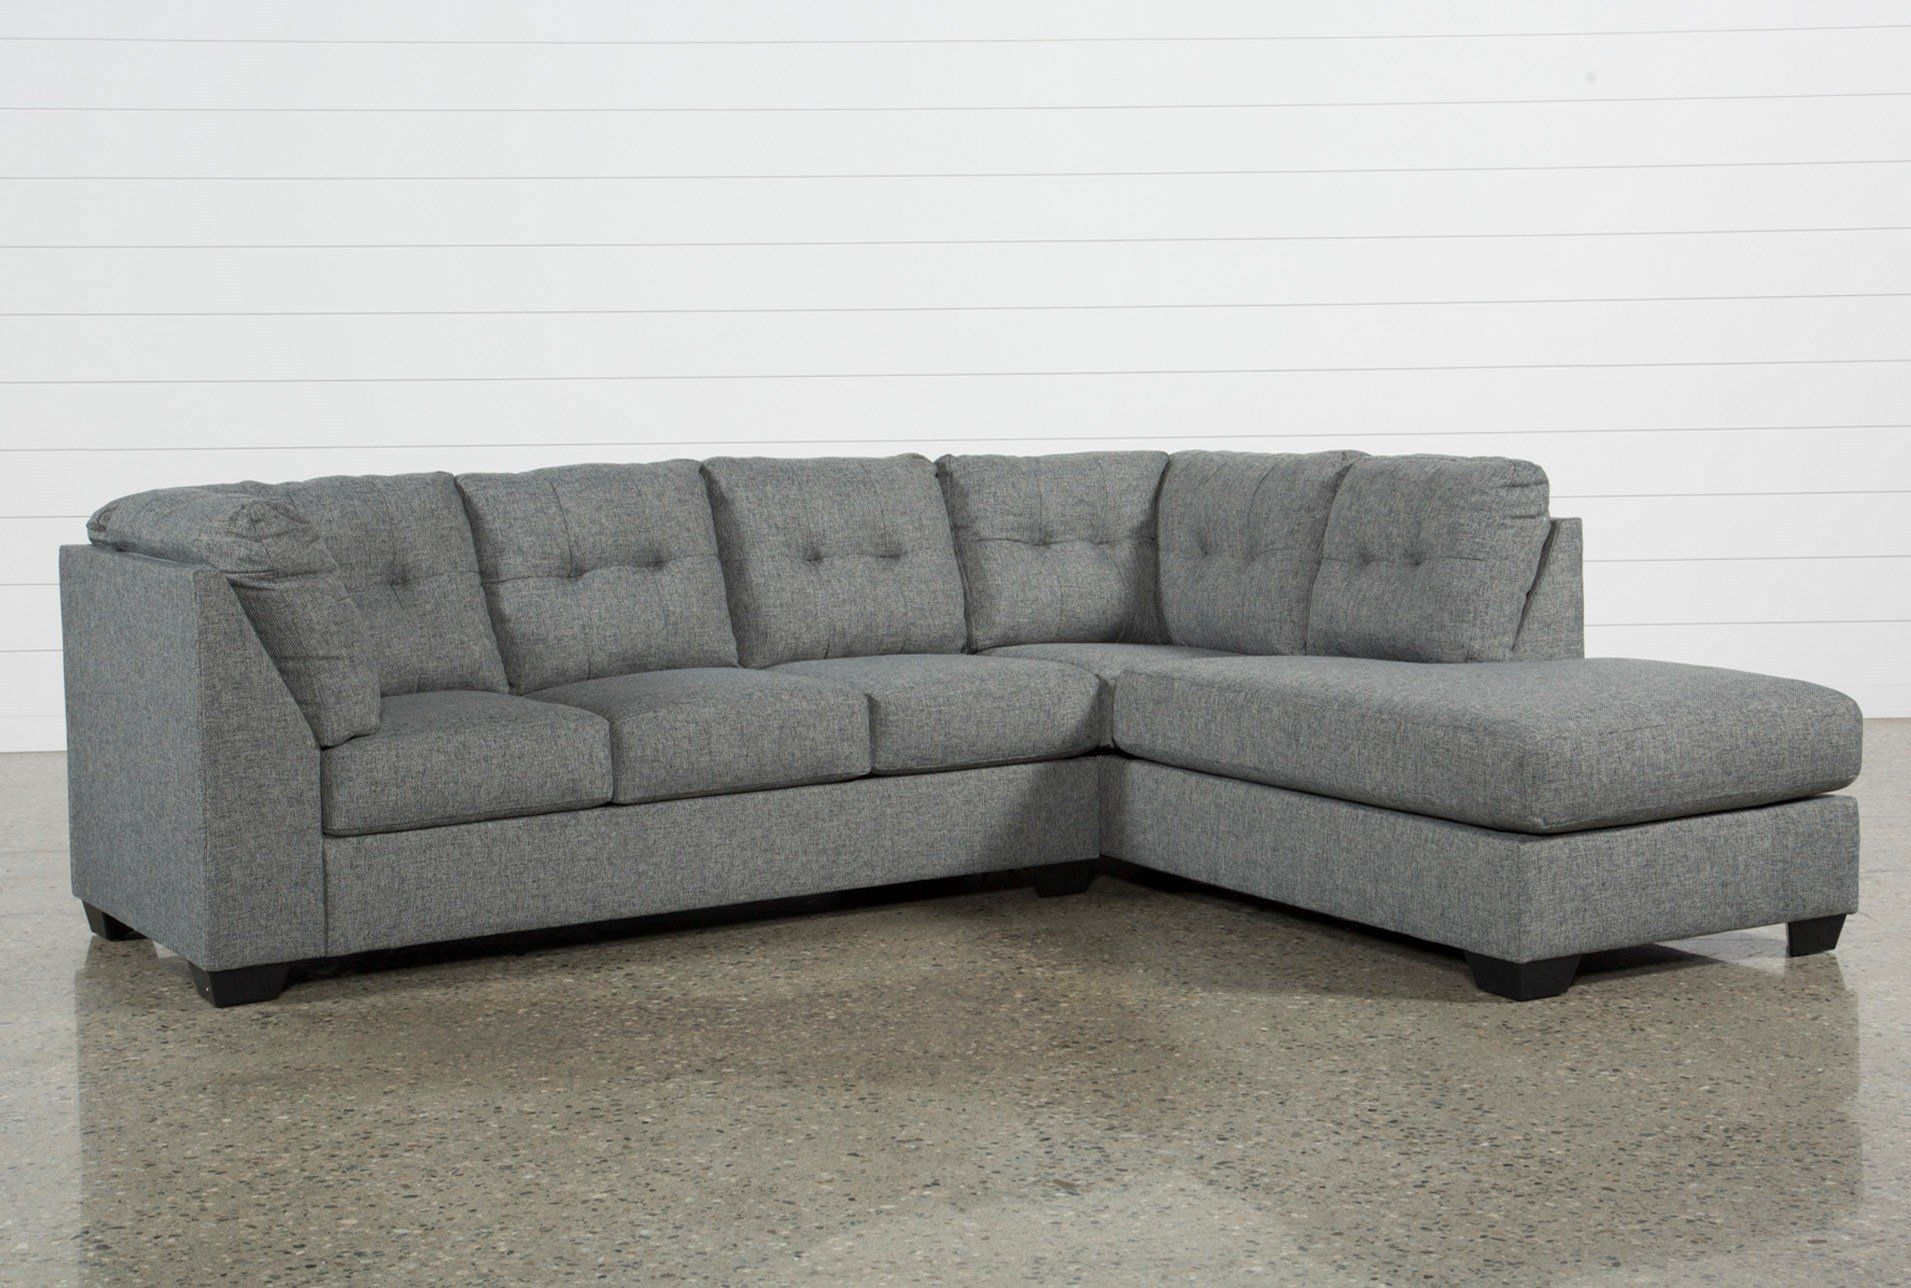 Ashley Arrowmask 2 Piece Sectional W/sleeper & Right Facing Chaise Pertaining To Aquarius Dark Grey 2 Piece Sectionals With Raf Chaise (Image 4 of 25)